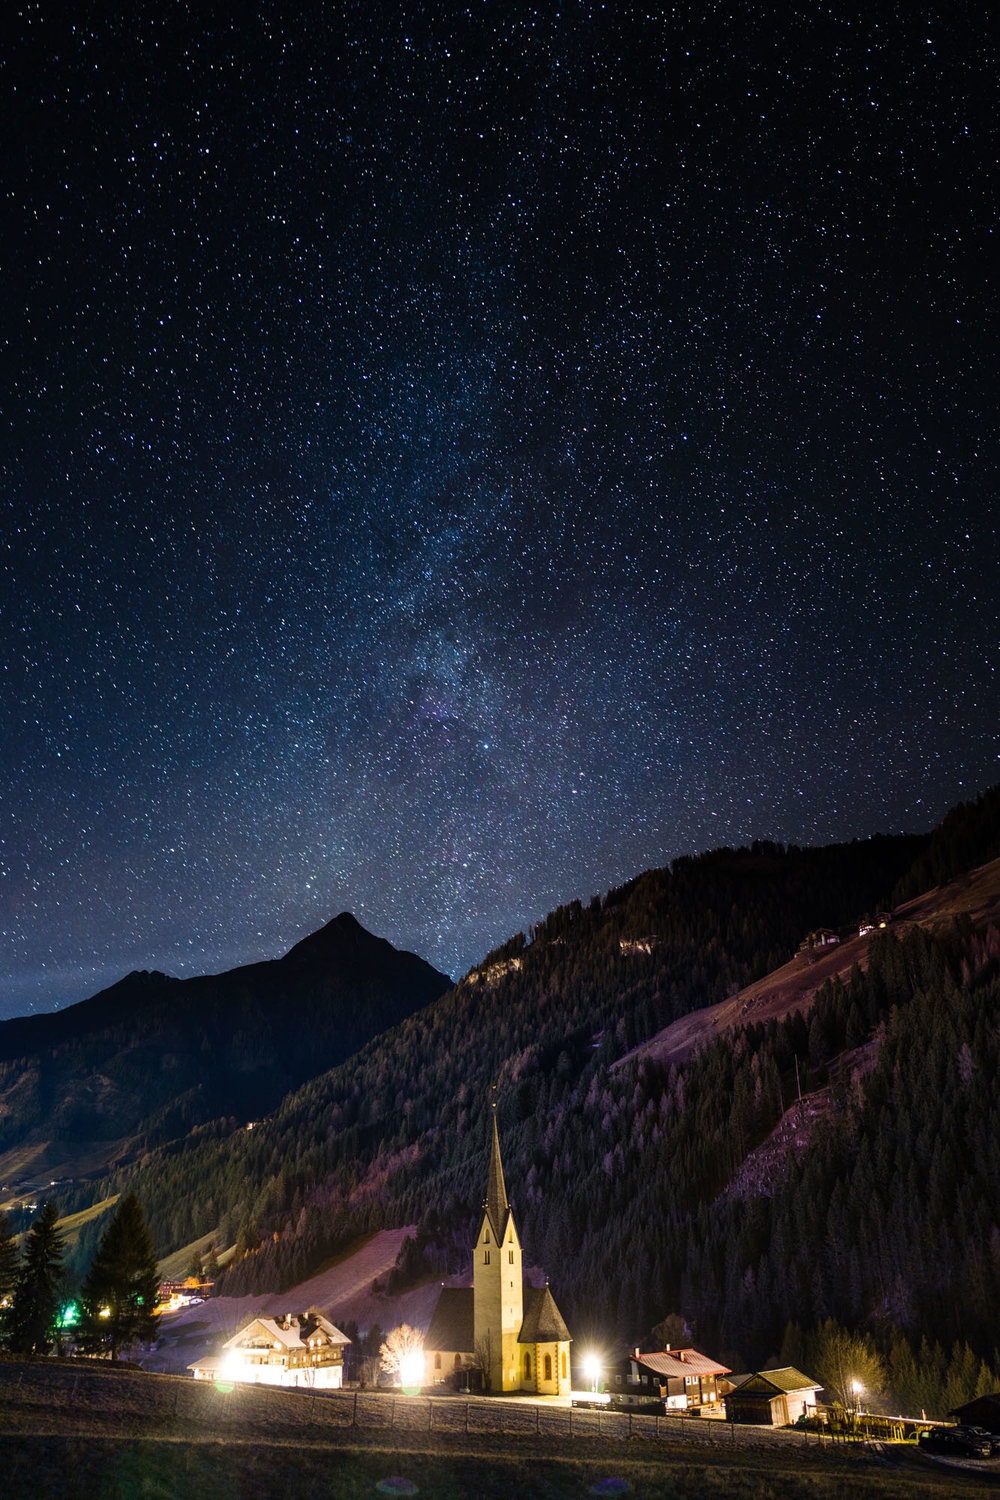 The Milky Way above the church of St.Leonhard in Austria. This picture from January was taken long before the firmware update in the summer considerably extended the longest possible exposure times. Now it is even easier to capture the required amount of starlight. The only tricky bit in this kind of night photography is to focus on infinity. Here it was simple — I set focus manually on the church.